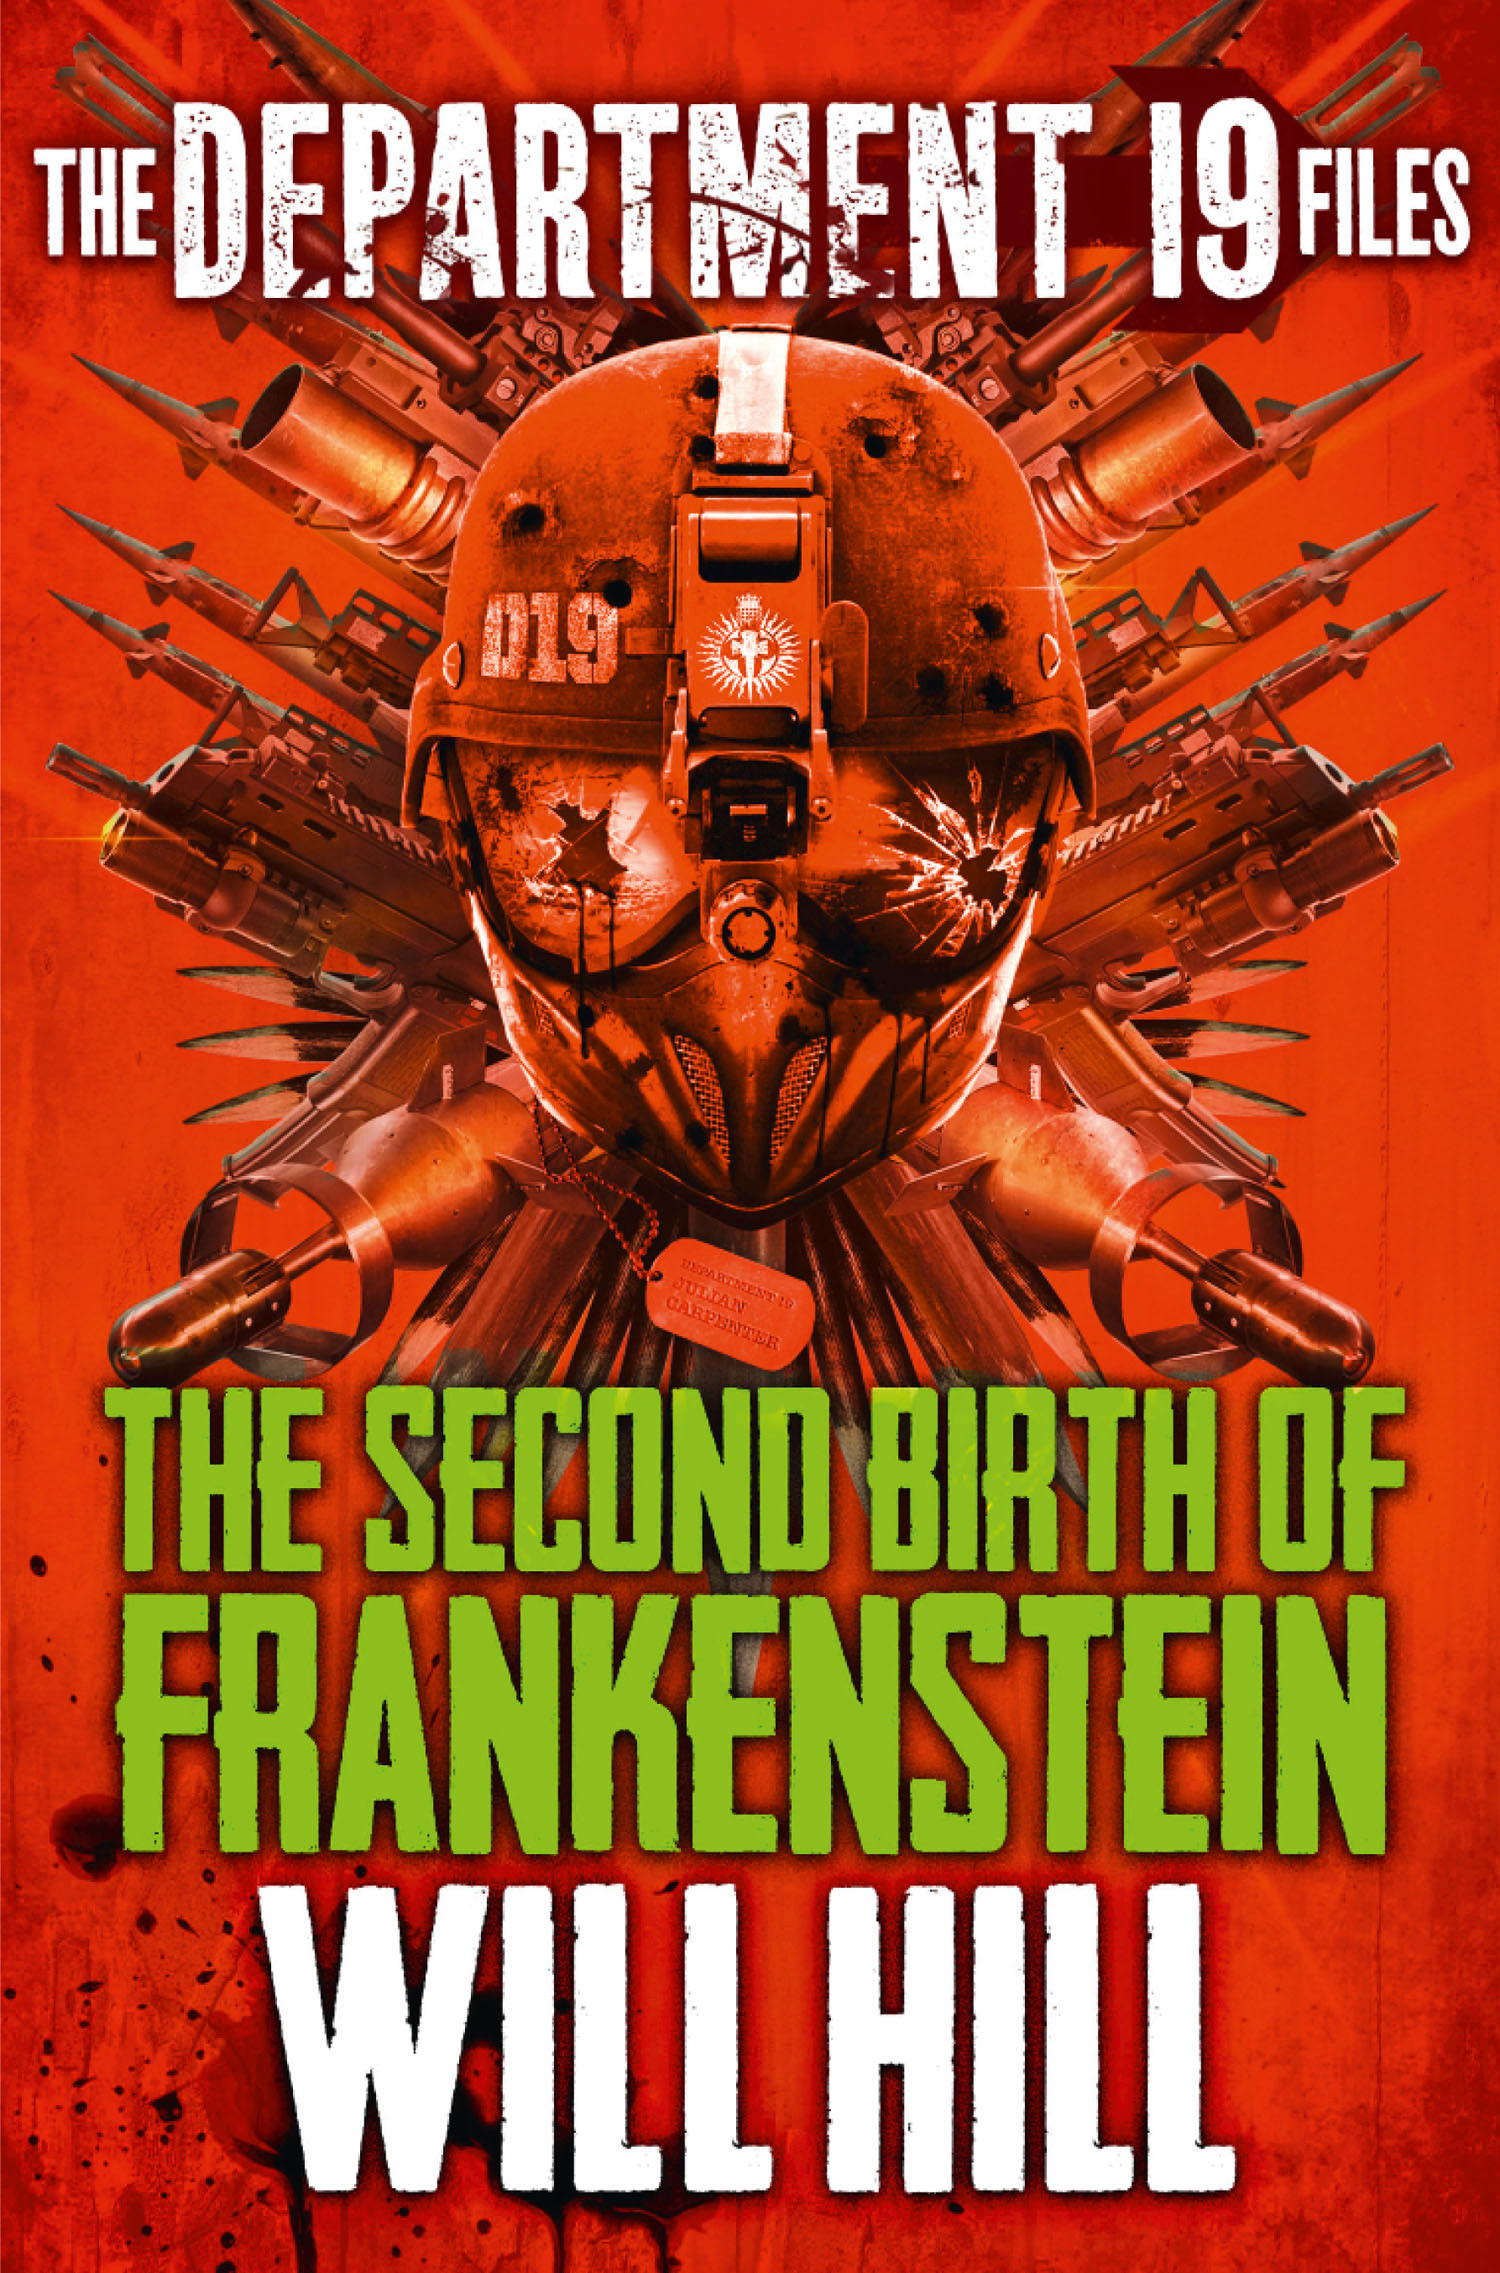 The Department 19 Files: The Second Birth of Frankenstein